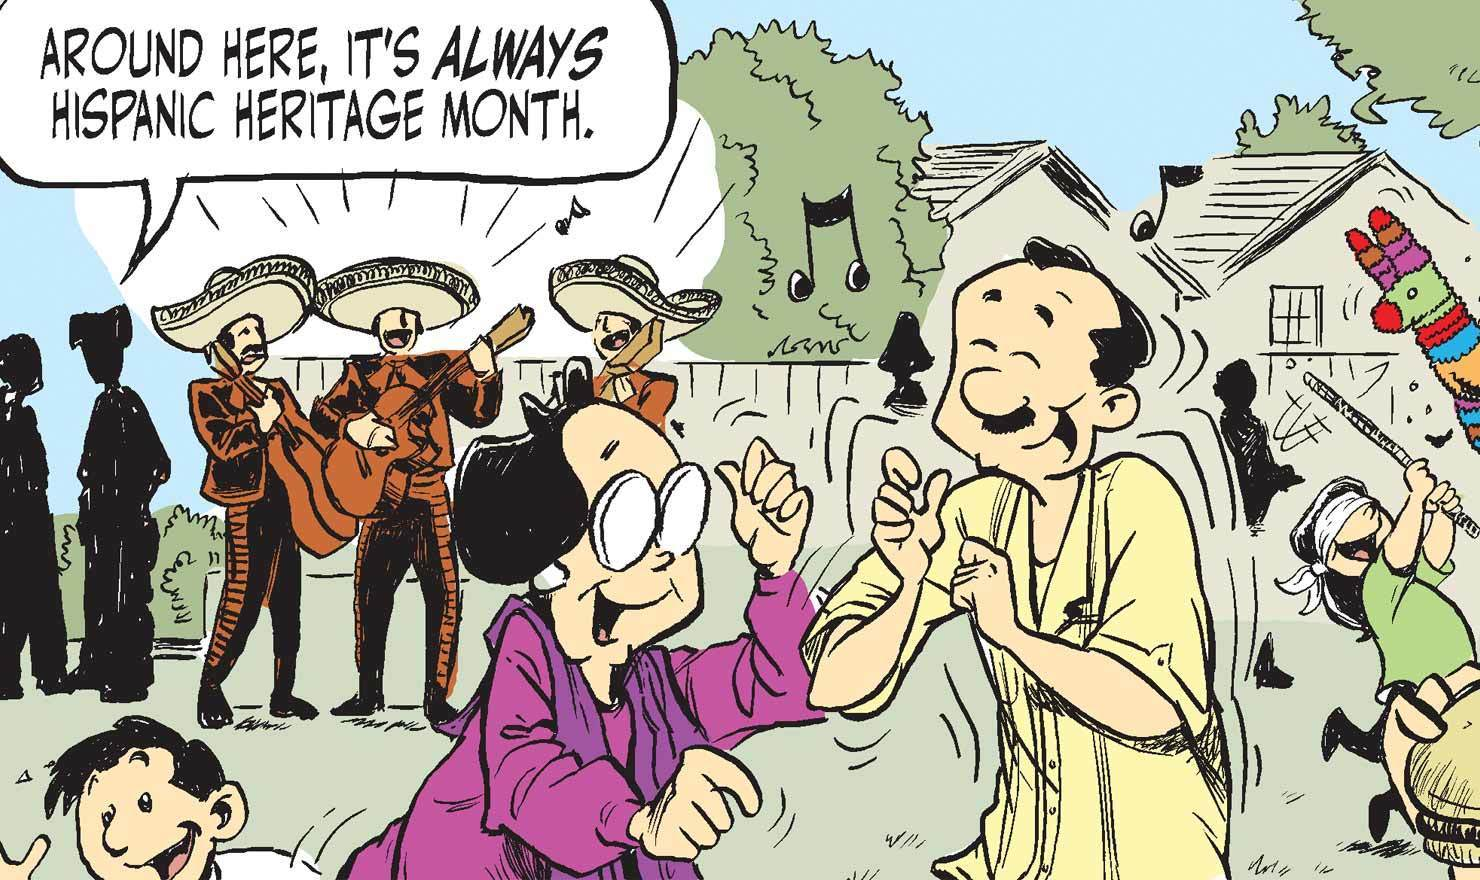 Hispanic Heritage Month Comics Bring Hilarity And Social Commentary